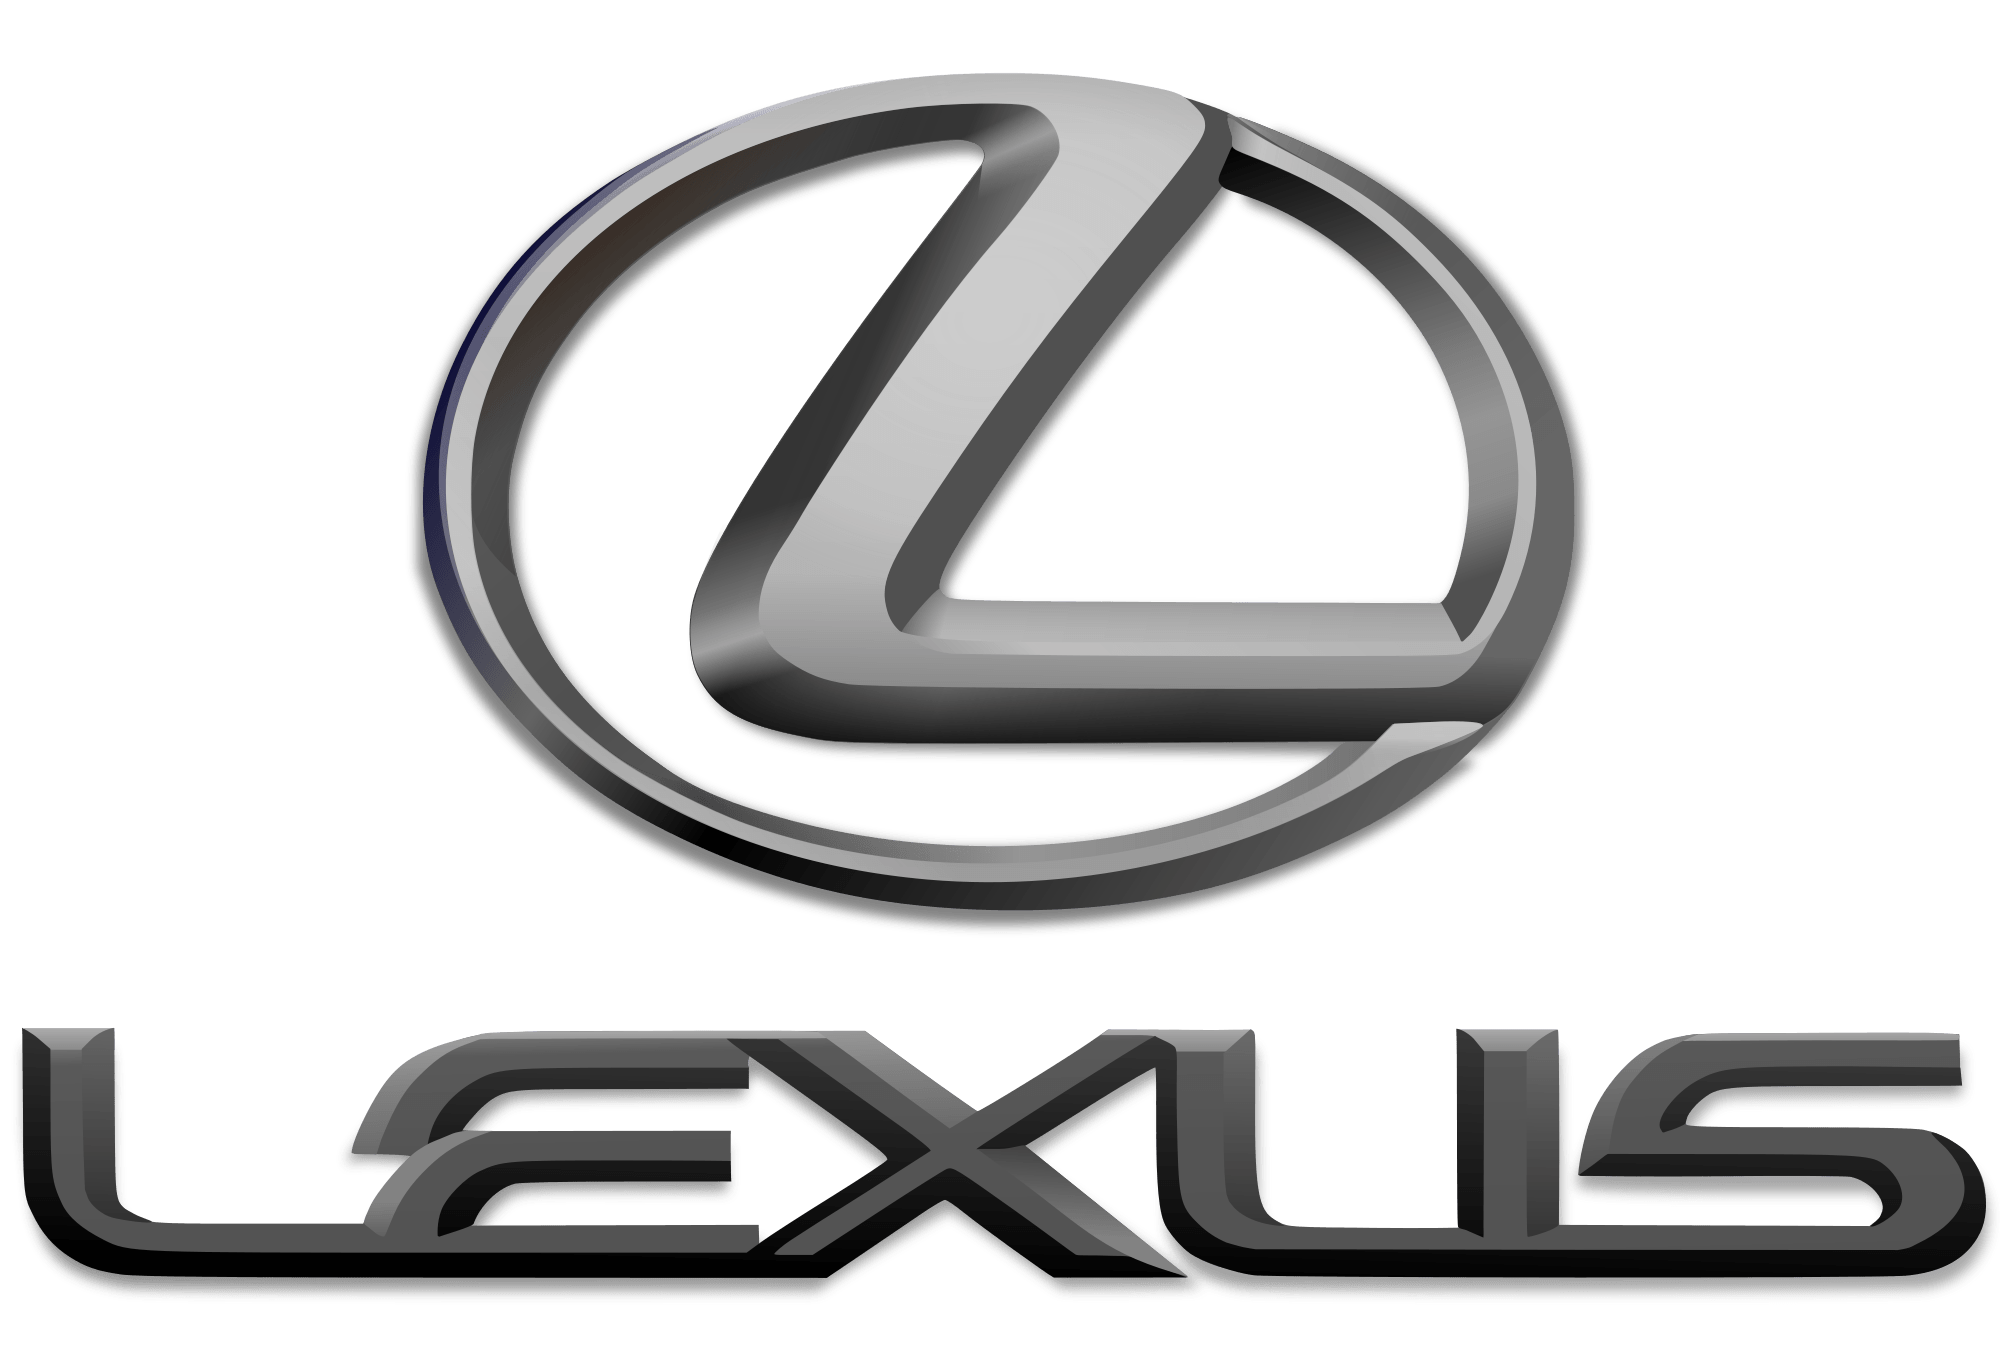 Lexus Logo - Lexus Logo, Lexus Car Symbol Meaning and History | Car Brand Names.com